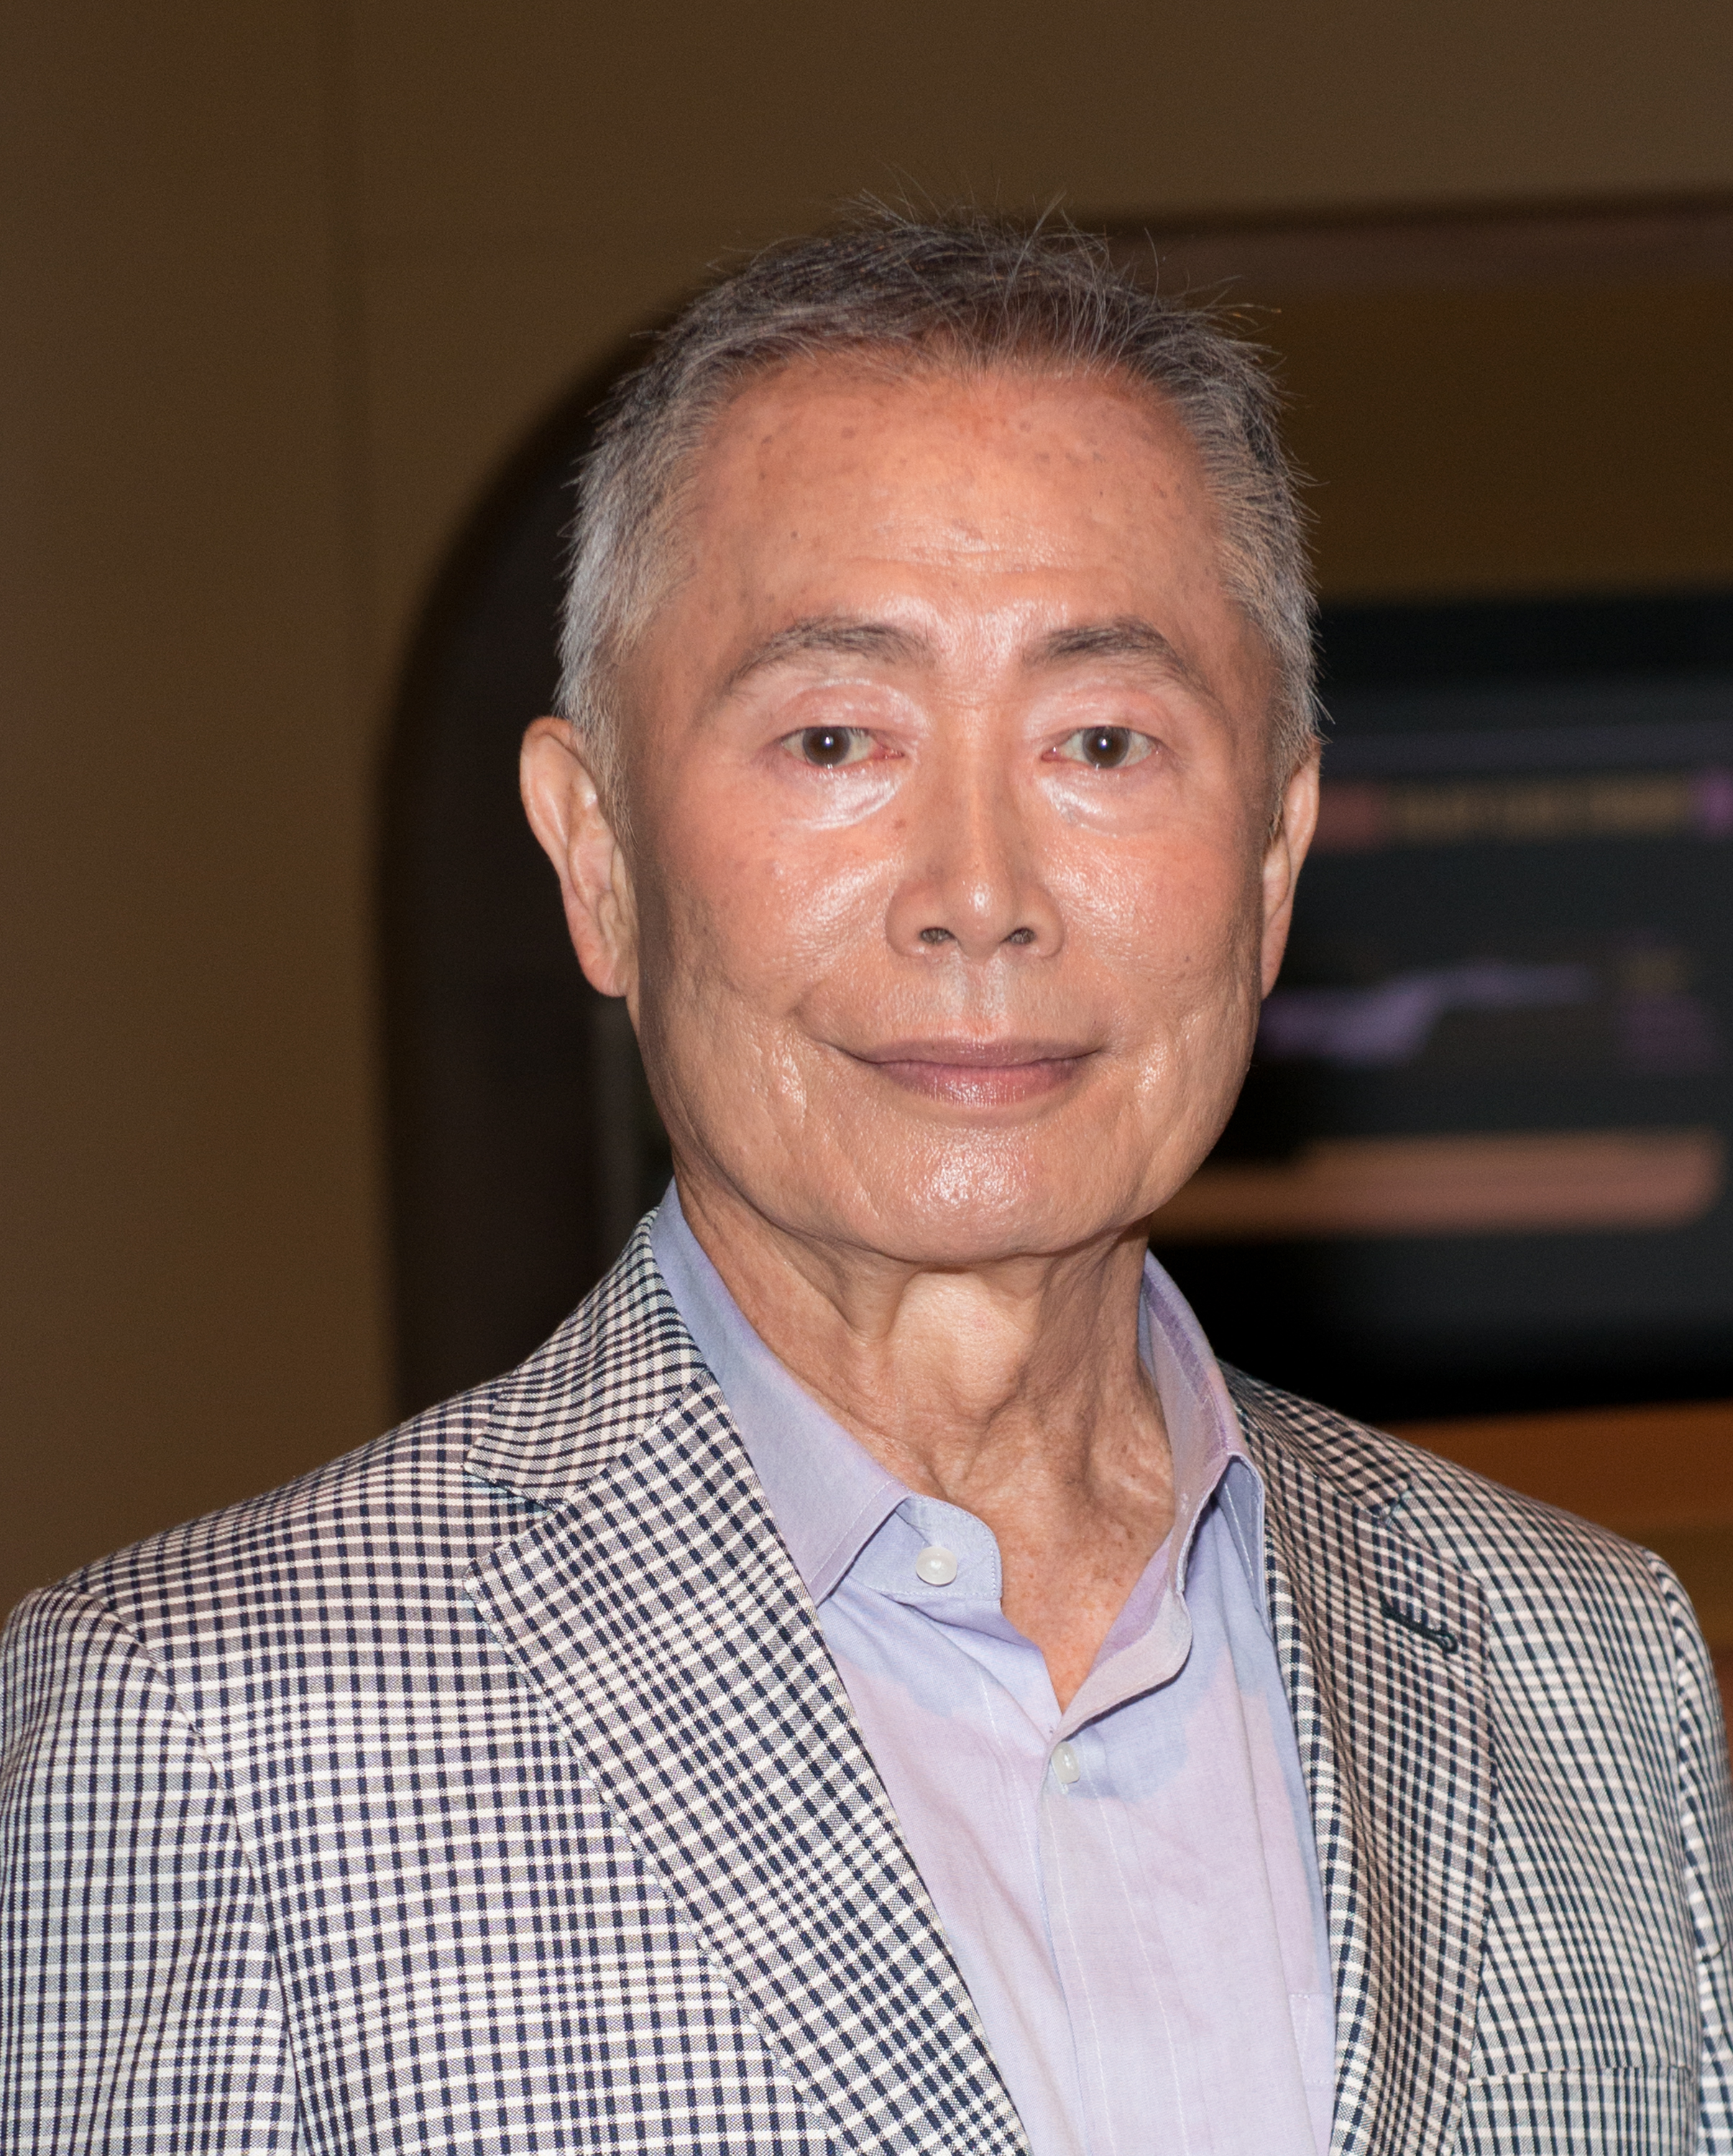 George Takei attends the Star Trek: The Star Fleet Academy Experience at Intrepid Sea-Air-Space Museum on June 30, 2016 in New York City.